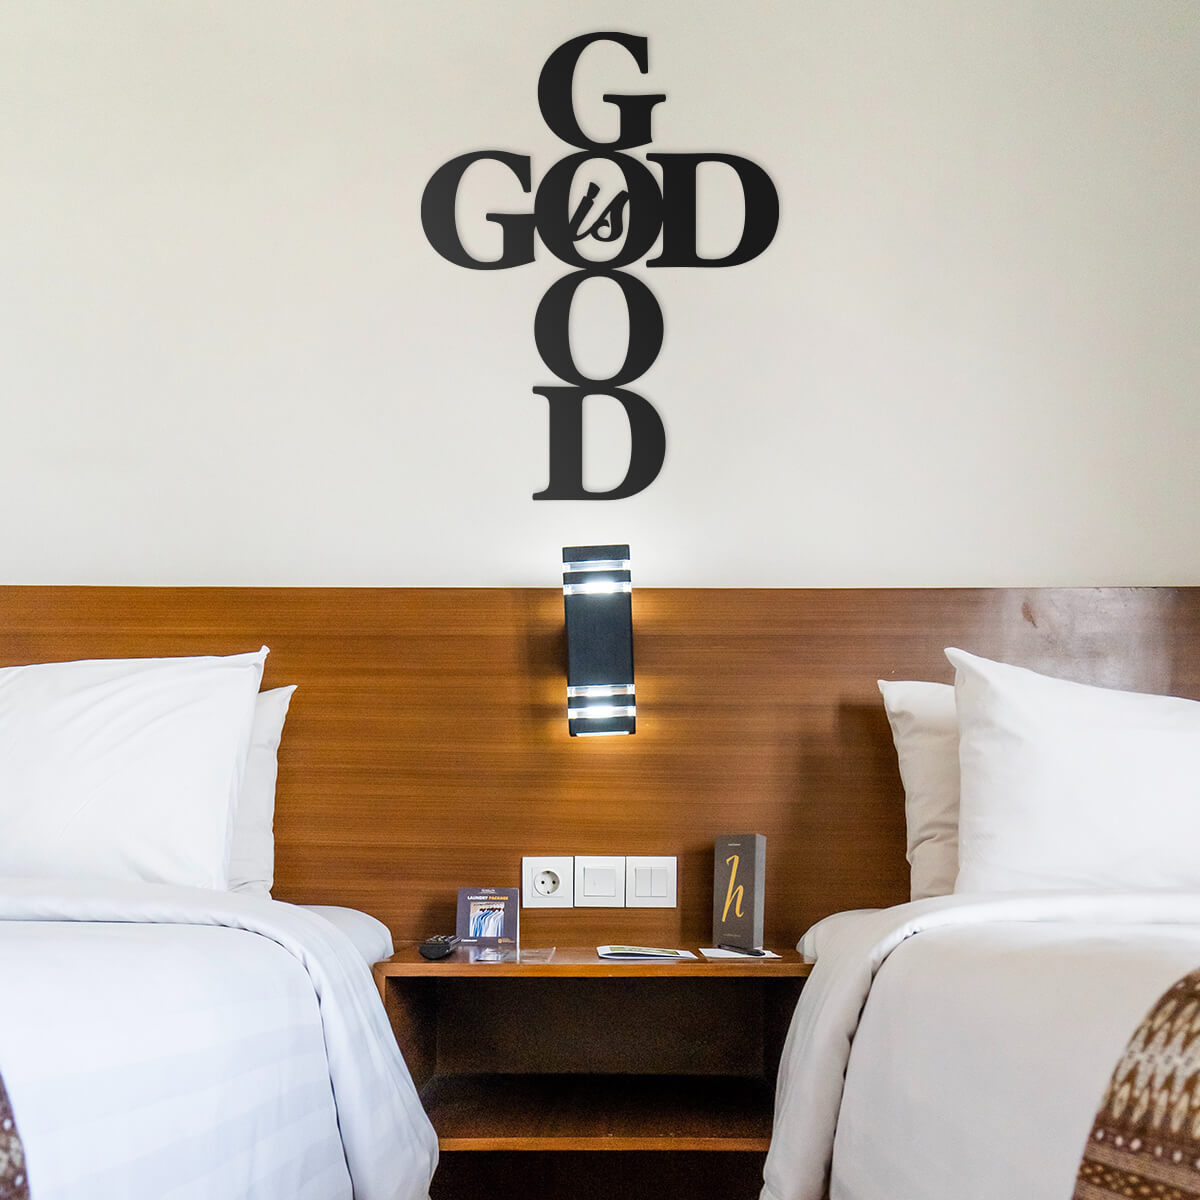 God is Good Wall Art  - RealSteel Center